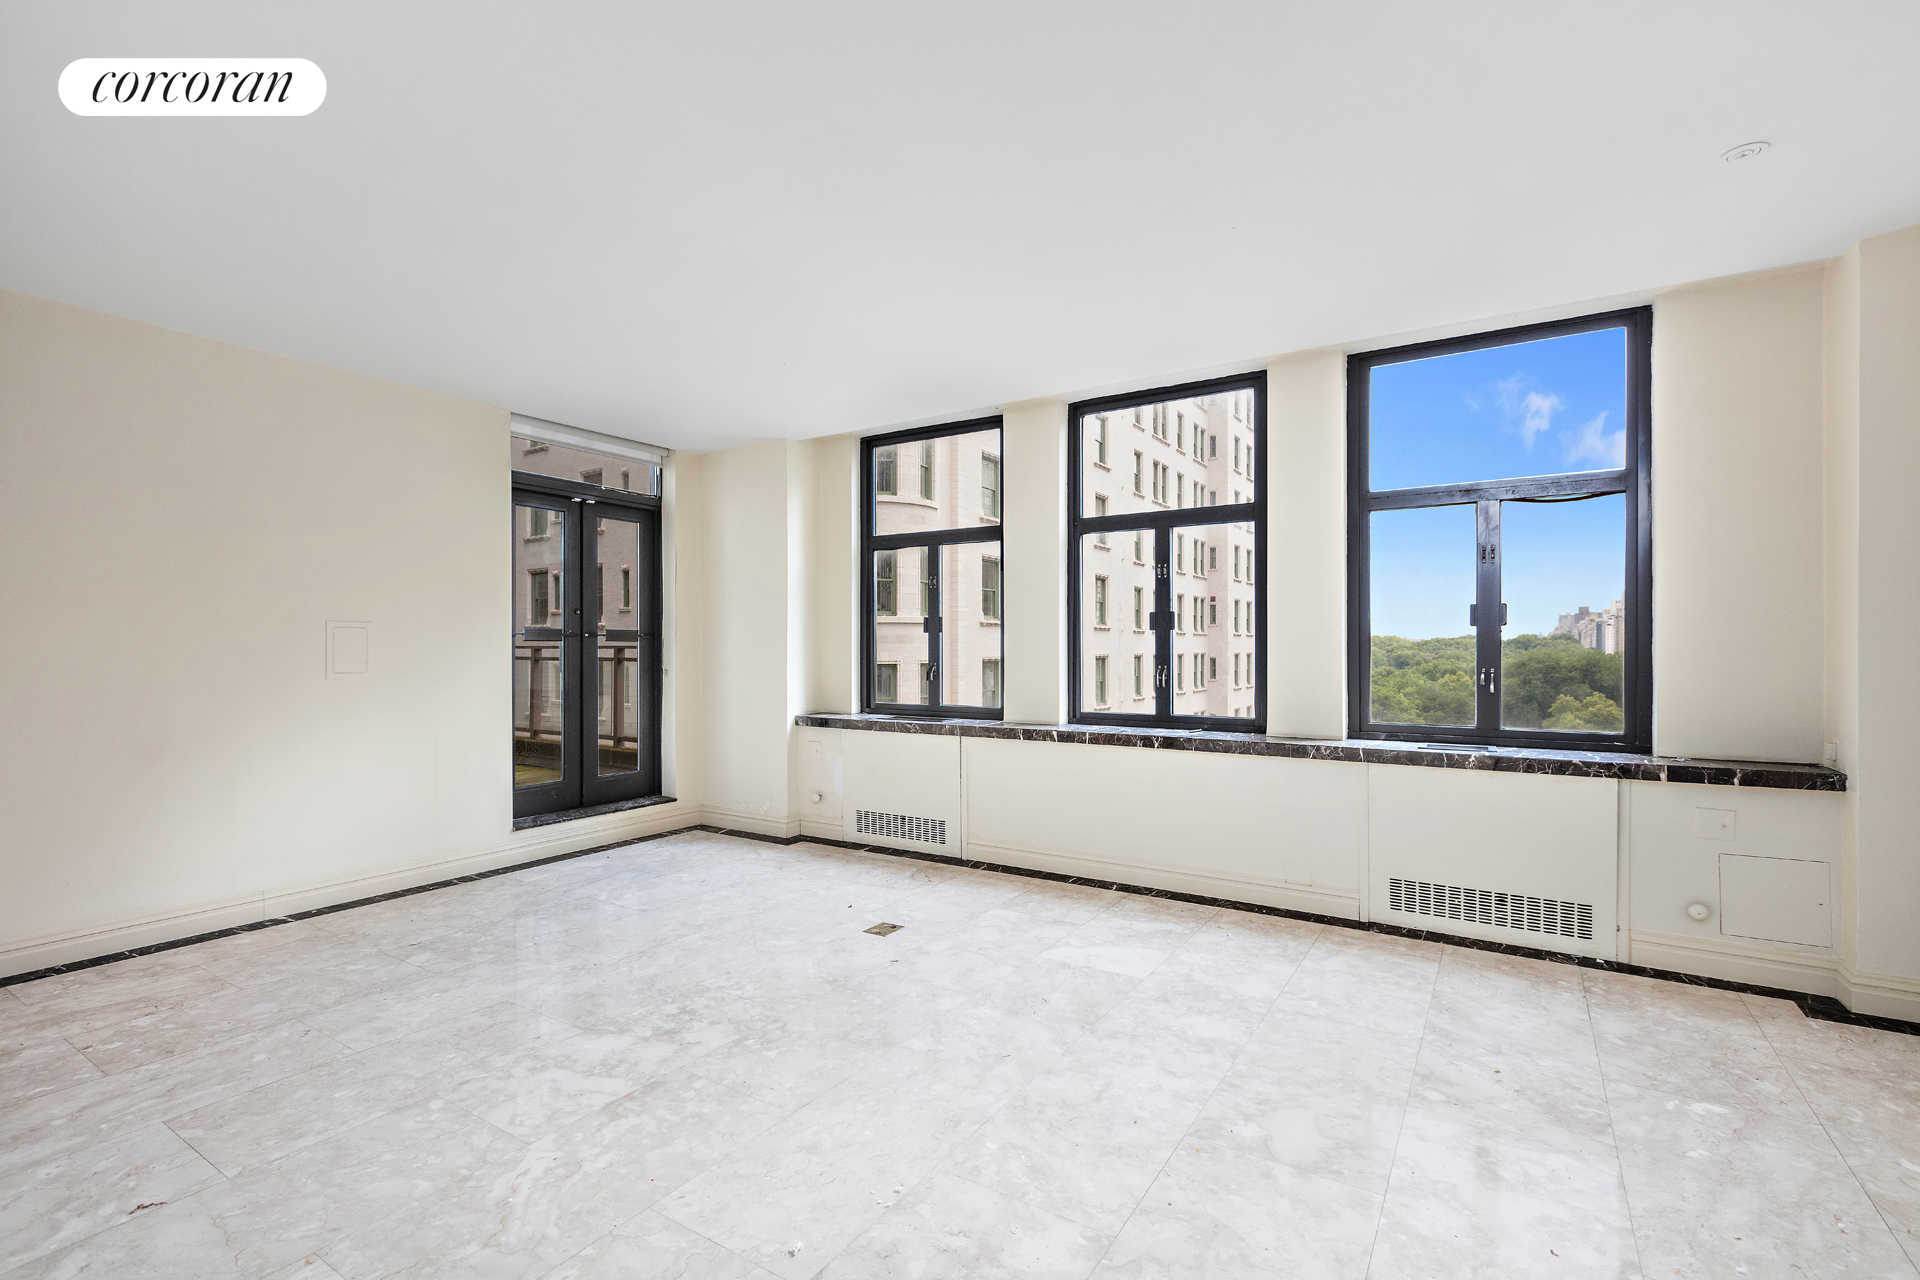 4 West 58th Street, 9Fl, Reception